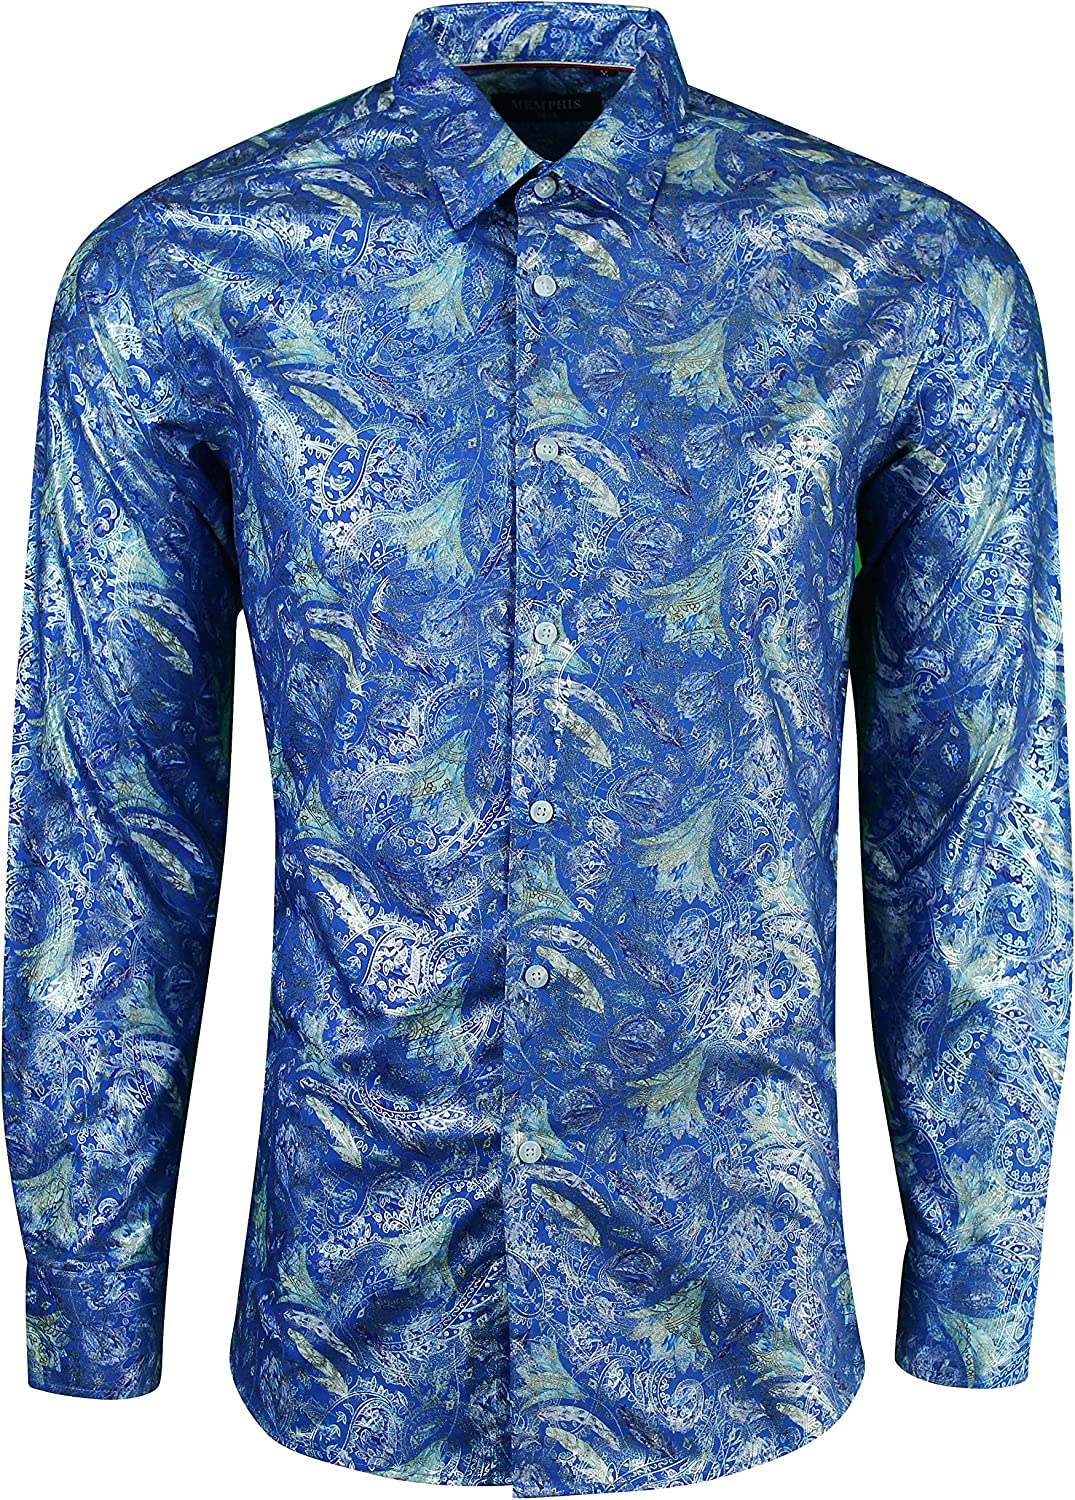 Memphis Mens Floral Paisley Flower Leaf Shiny Casual Evening Party Shirt: Amazon.es: Ropa y accesorios